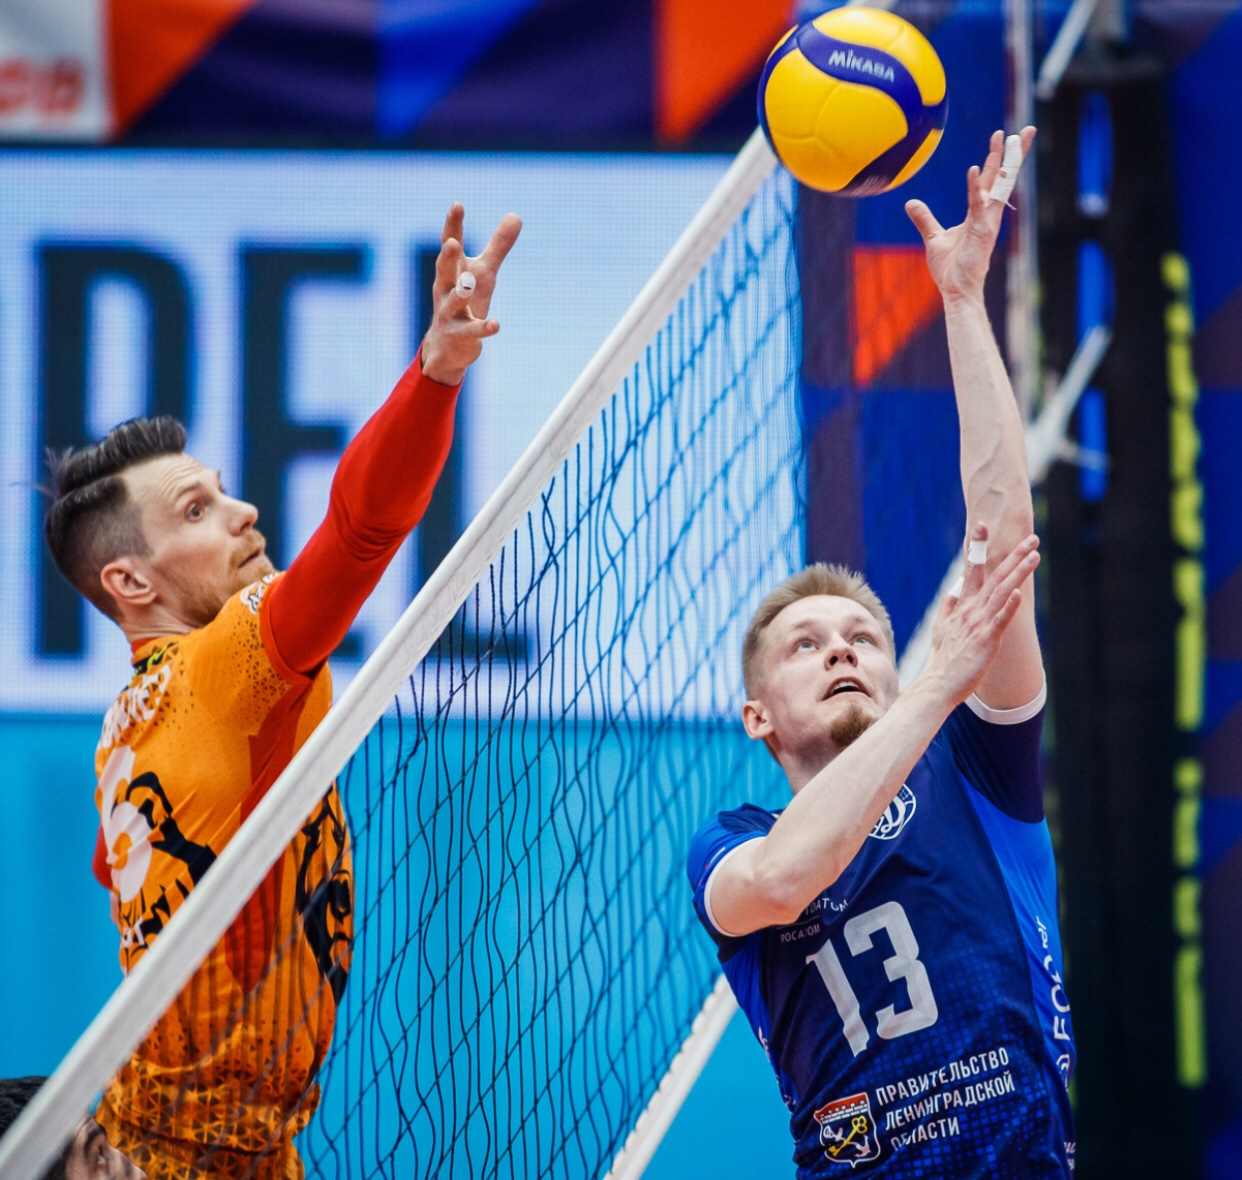 Russia: no problems for Kuzbass Kemerovo in advance of Round 25